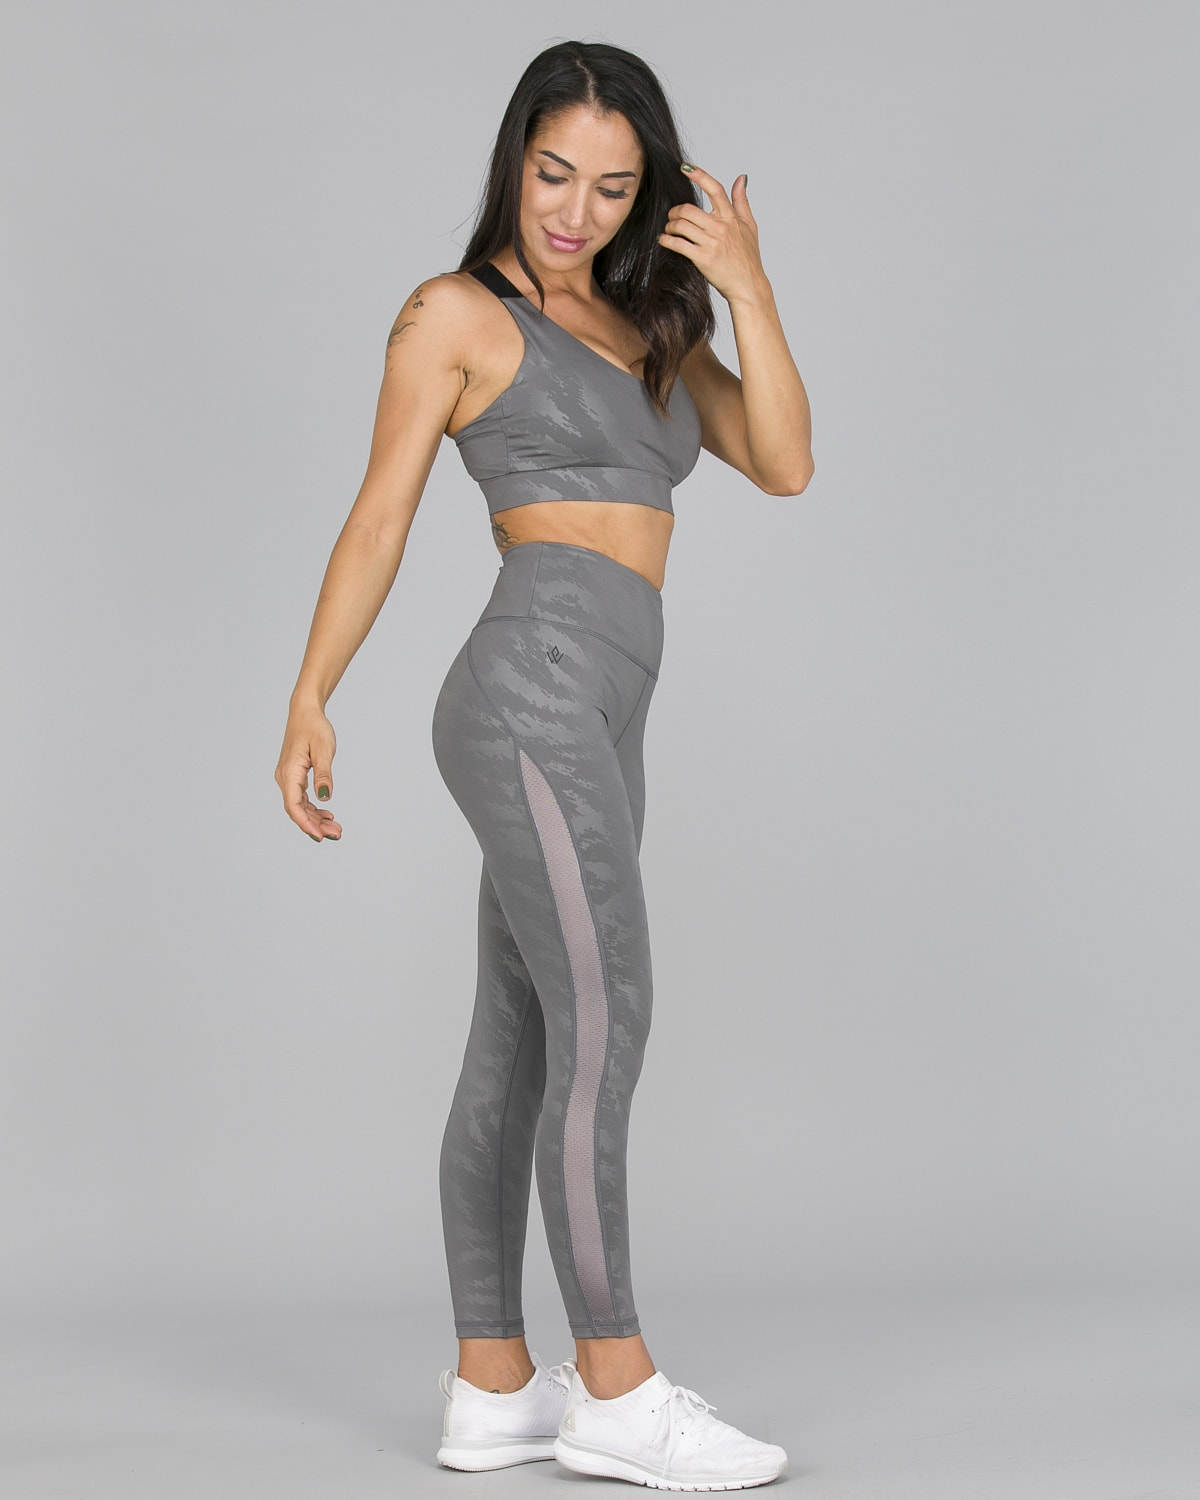 Workout Empire – Elevate Leggings – Silver9